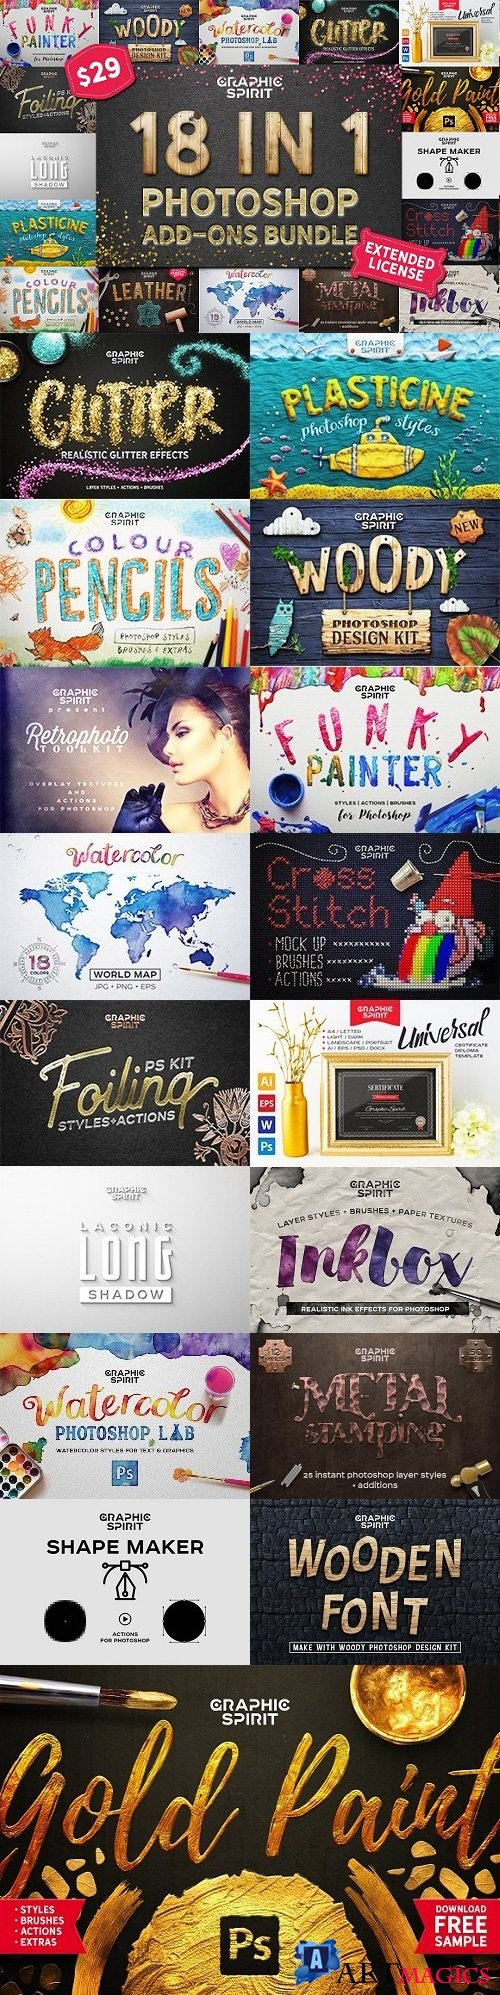 18 IN 1 Photoshop Bundle SALE - 1811554